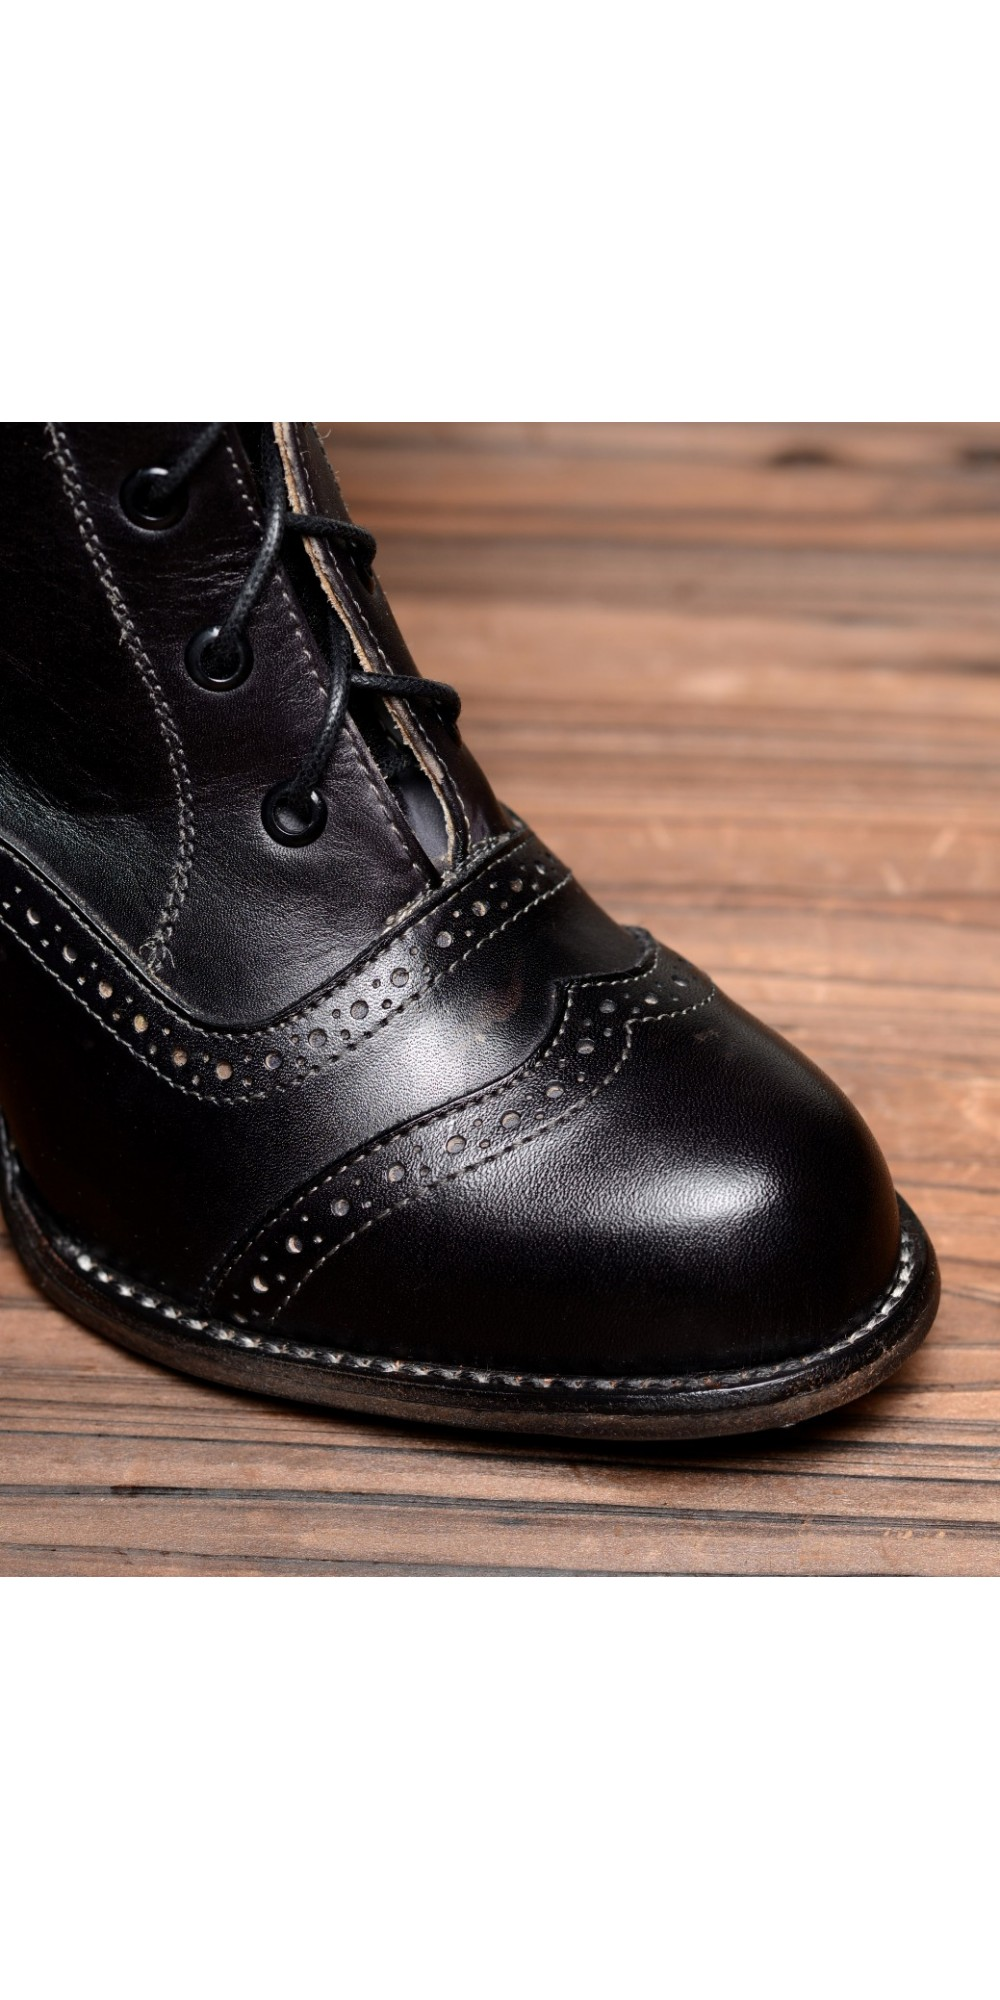 807a650d55db ... Victorian Inspired Mid-Calf Leather Boots in Black Rustic by Oak Tree  Farms